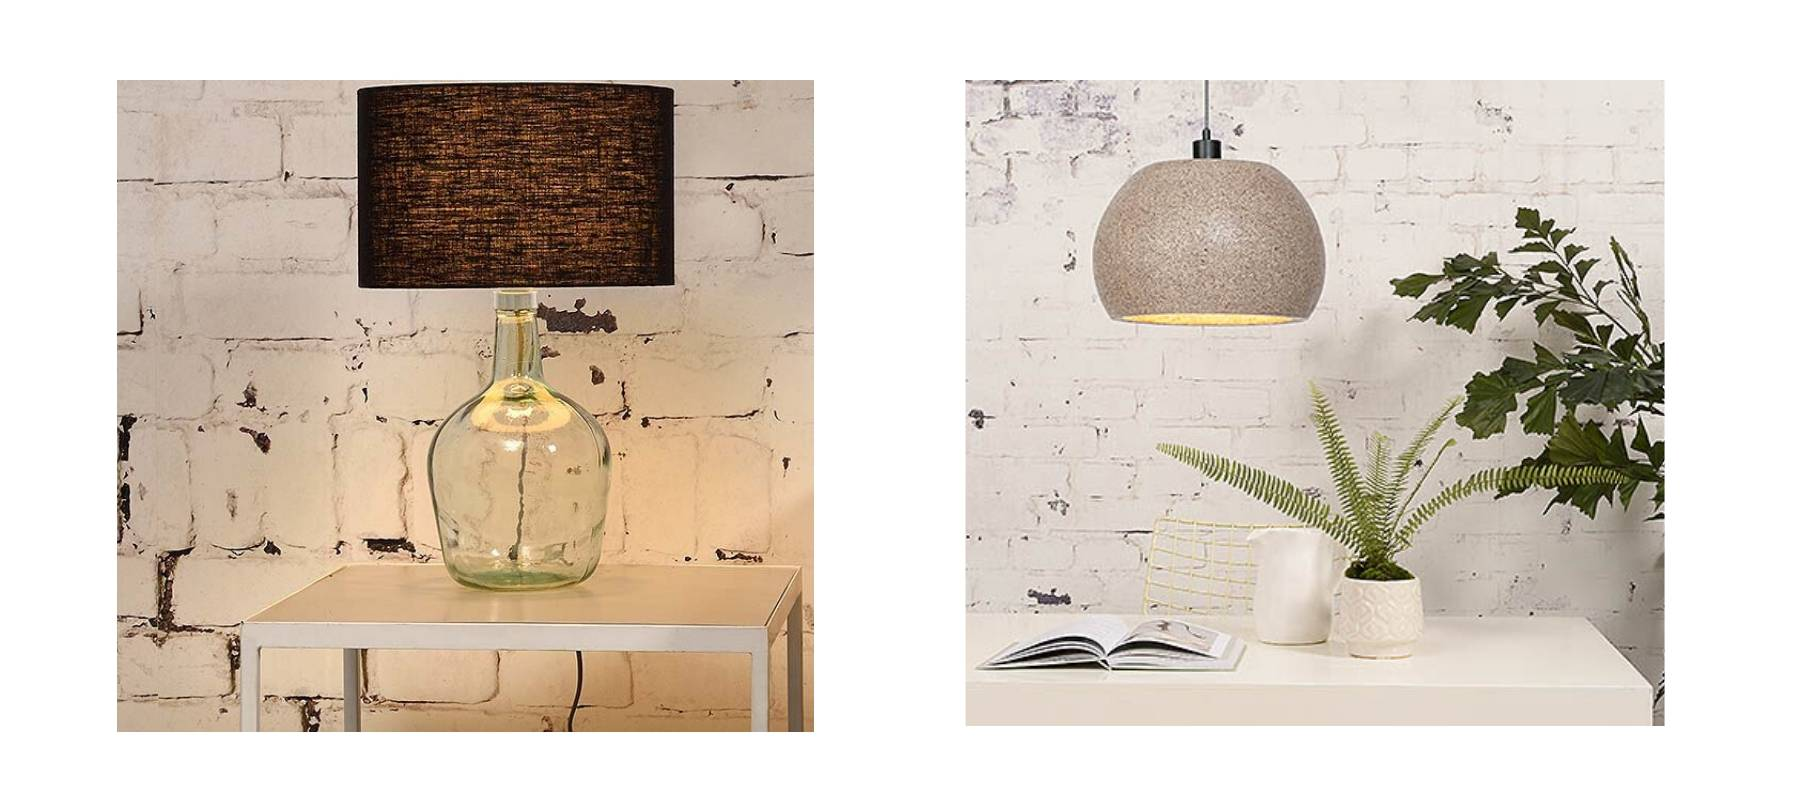 Glass table lamp with dark shade and woodchip hanging lights